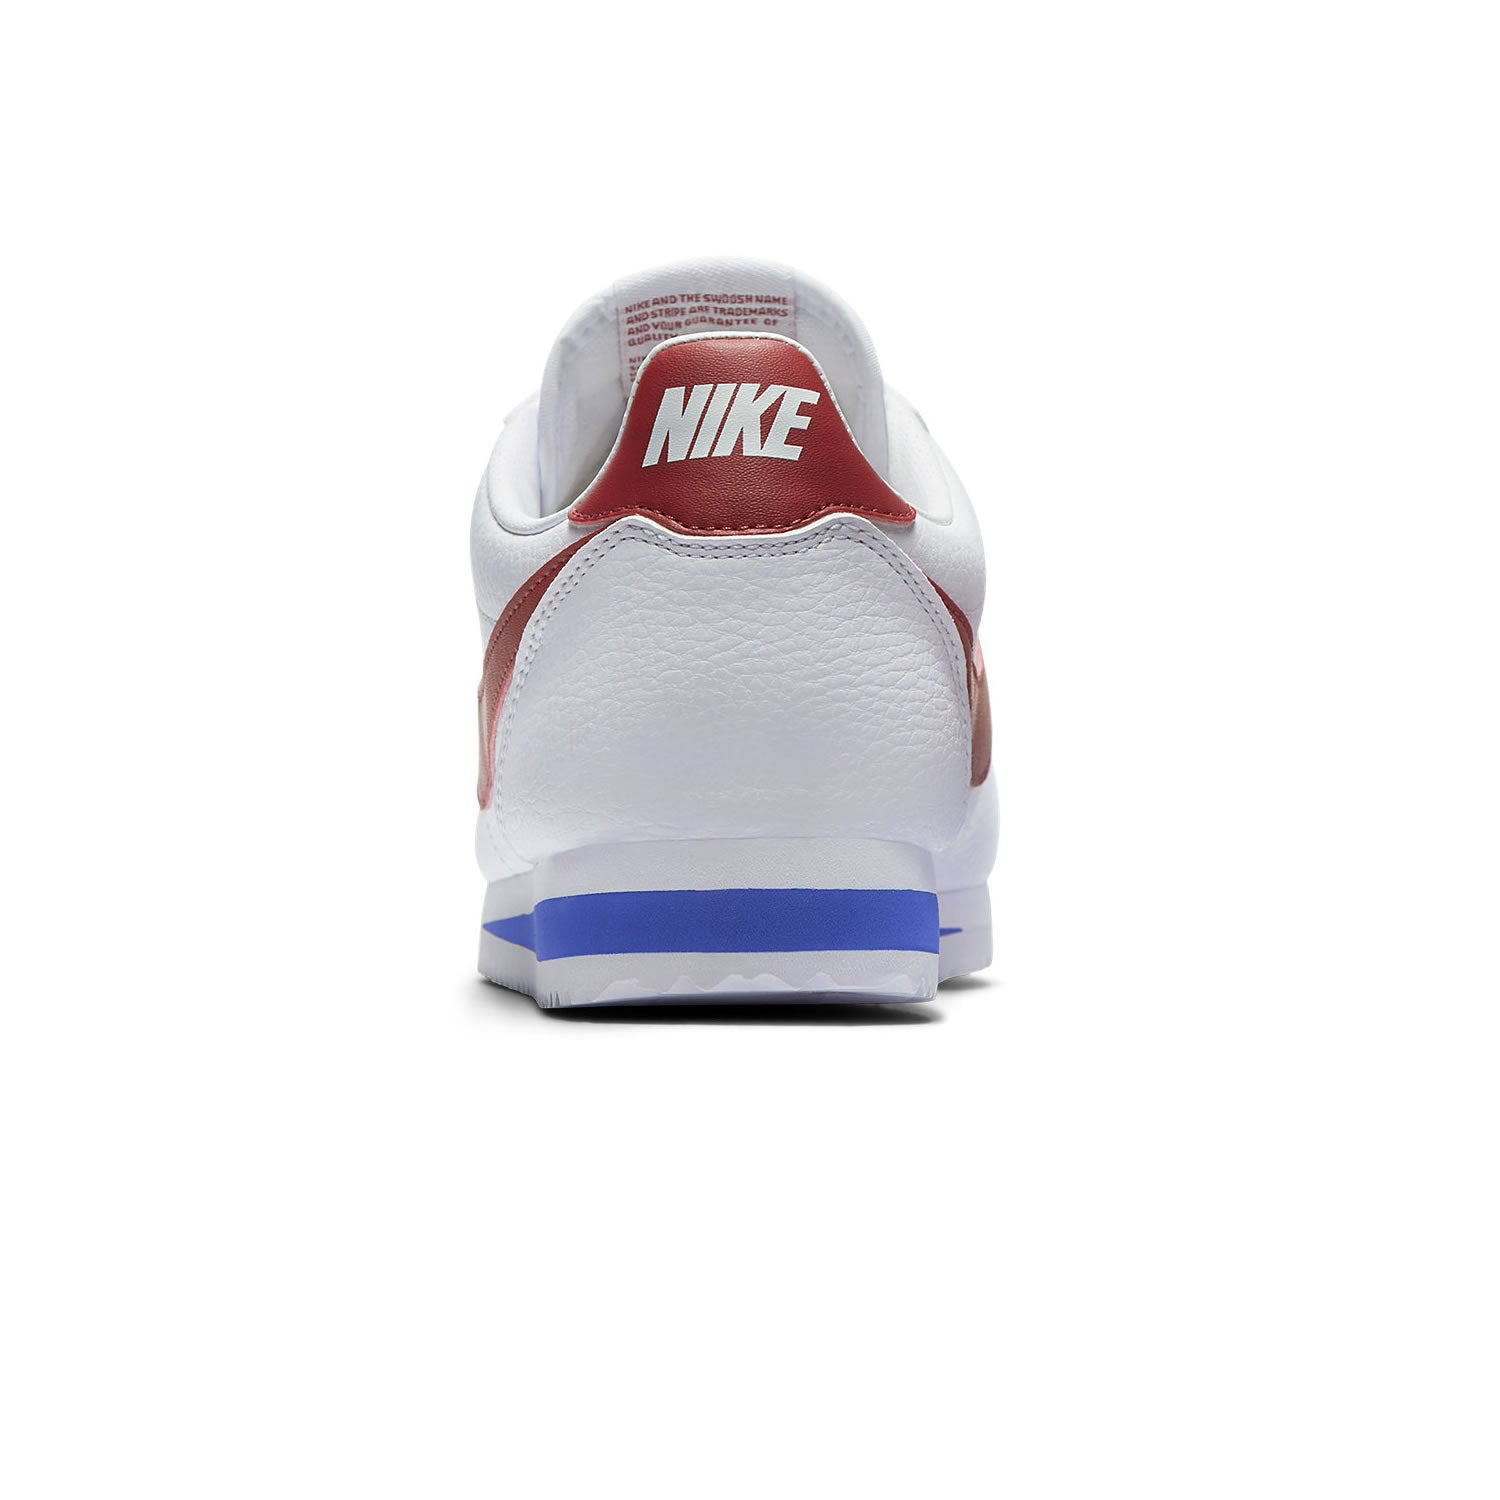 buy online 548bc 799b5 Nike Men's Cortez Classic Leather Trainers - White